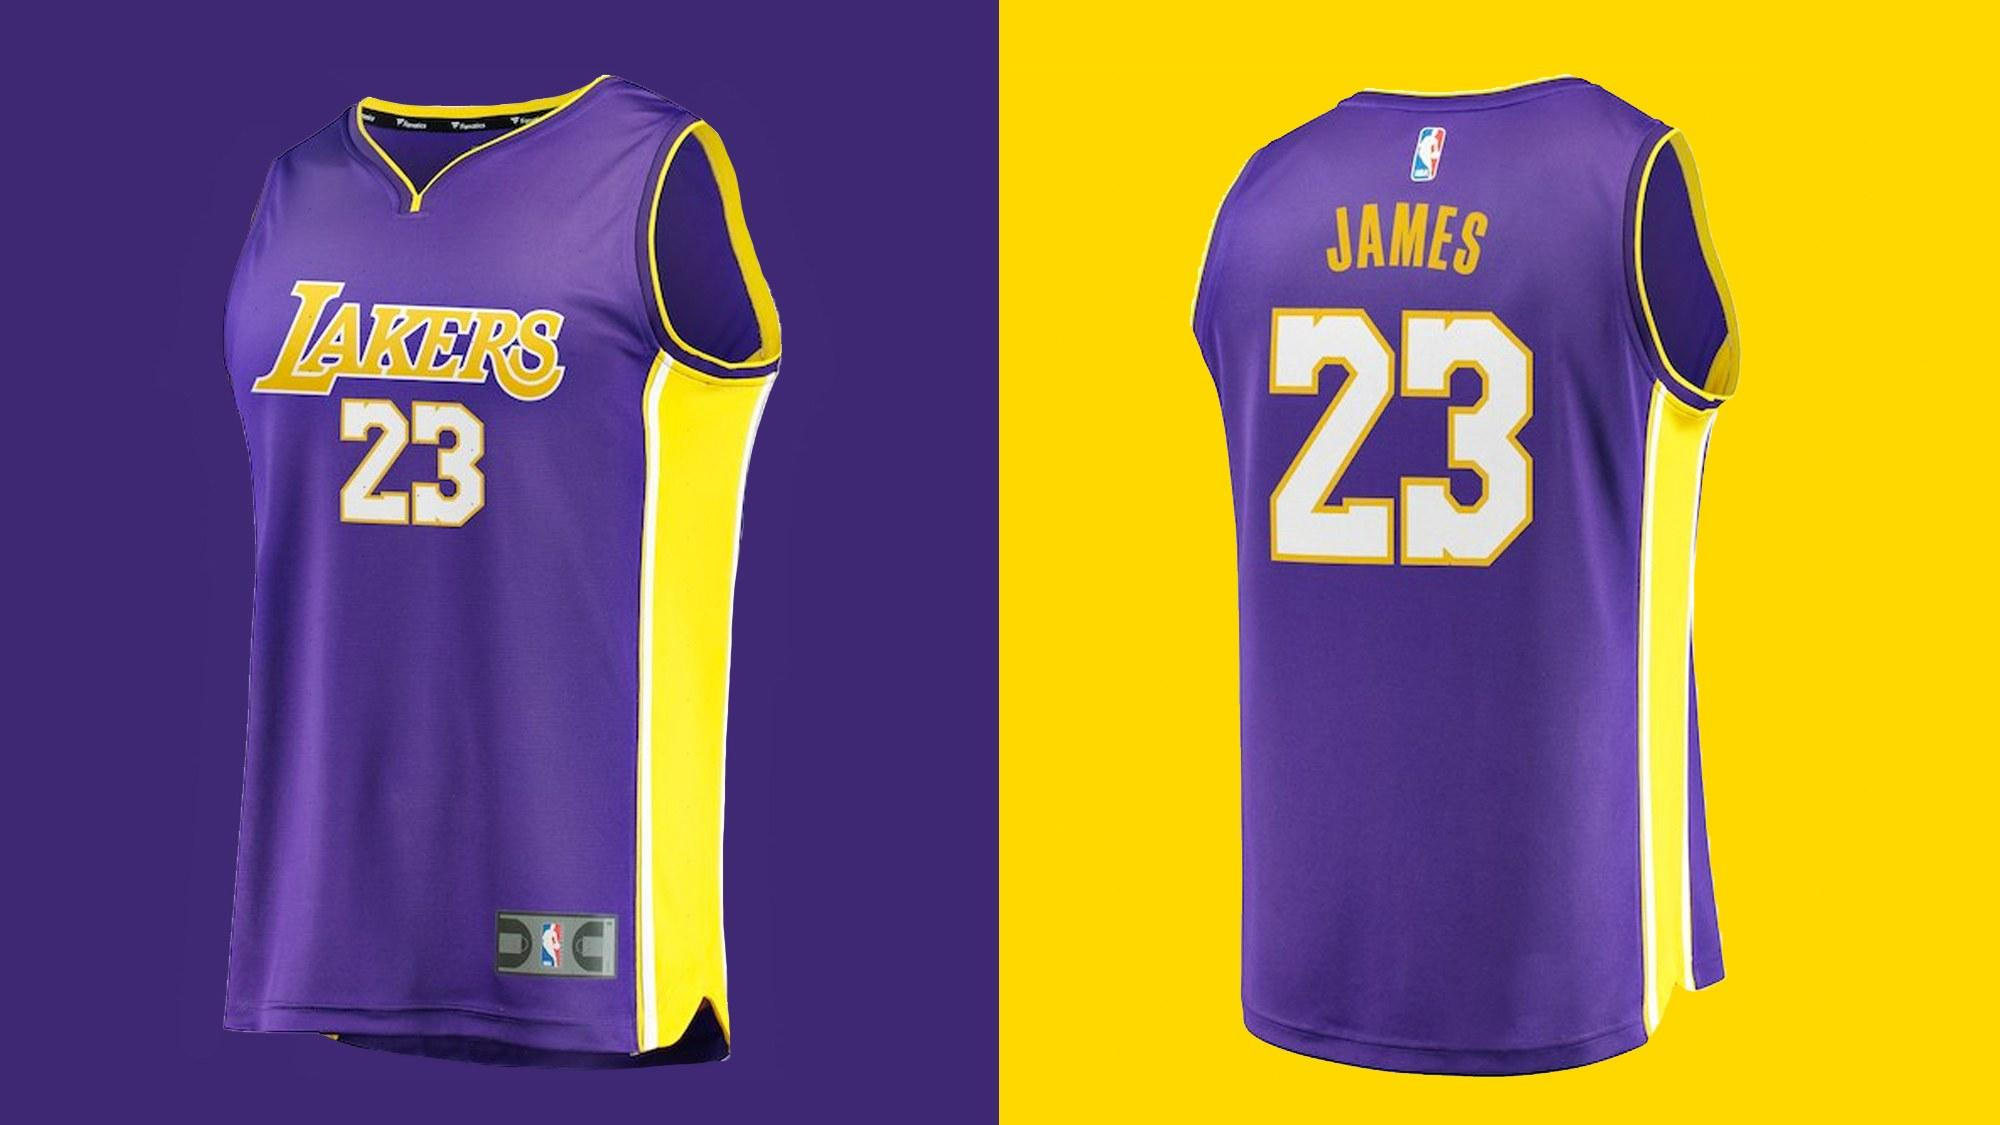 LeBron James jersey Los Angeles Lakers